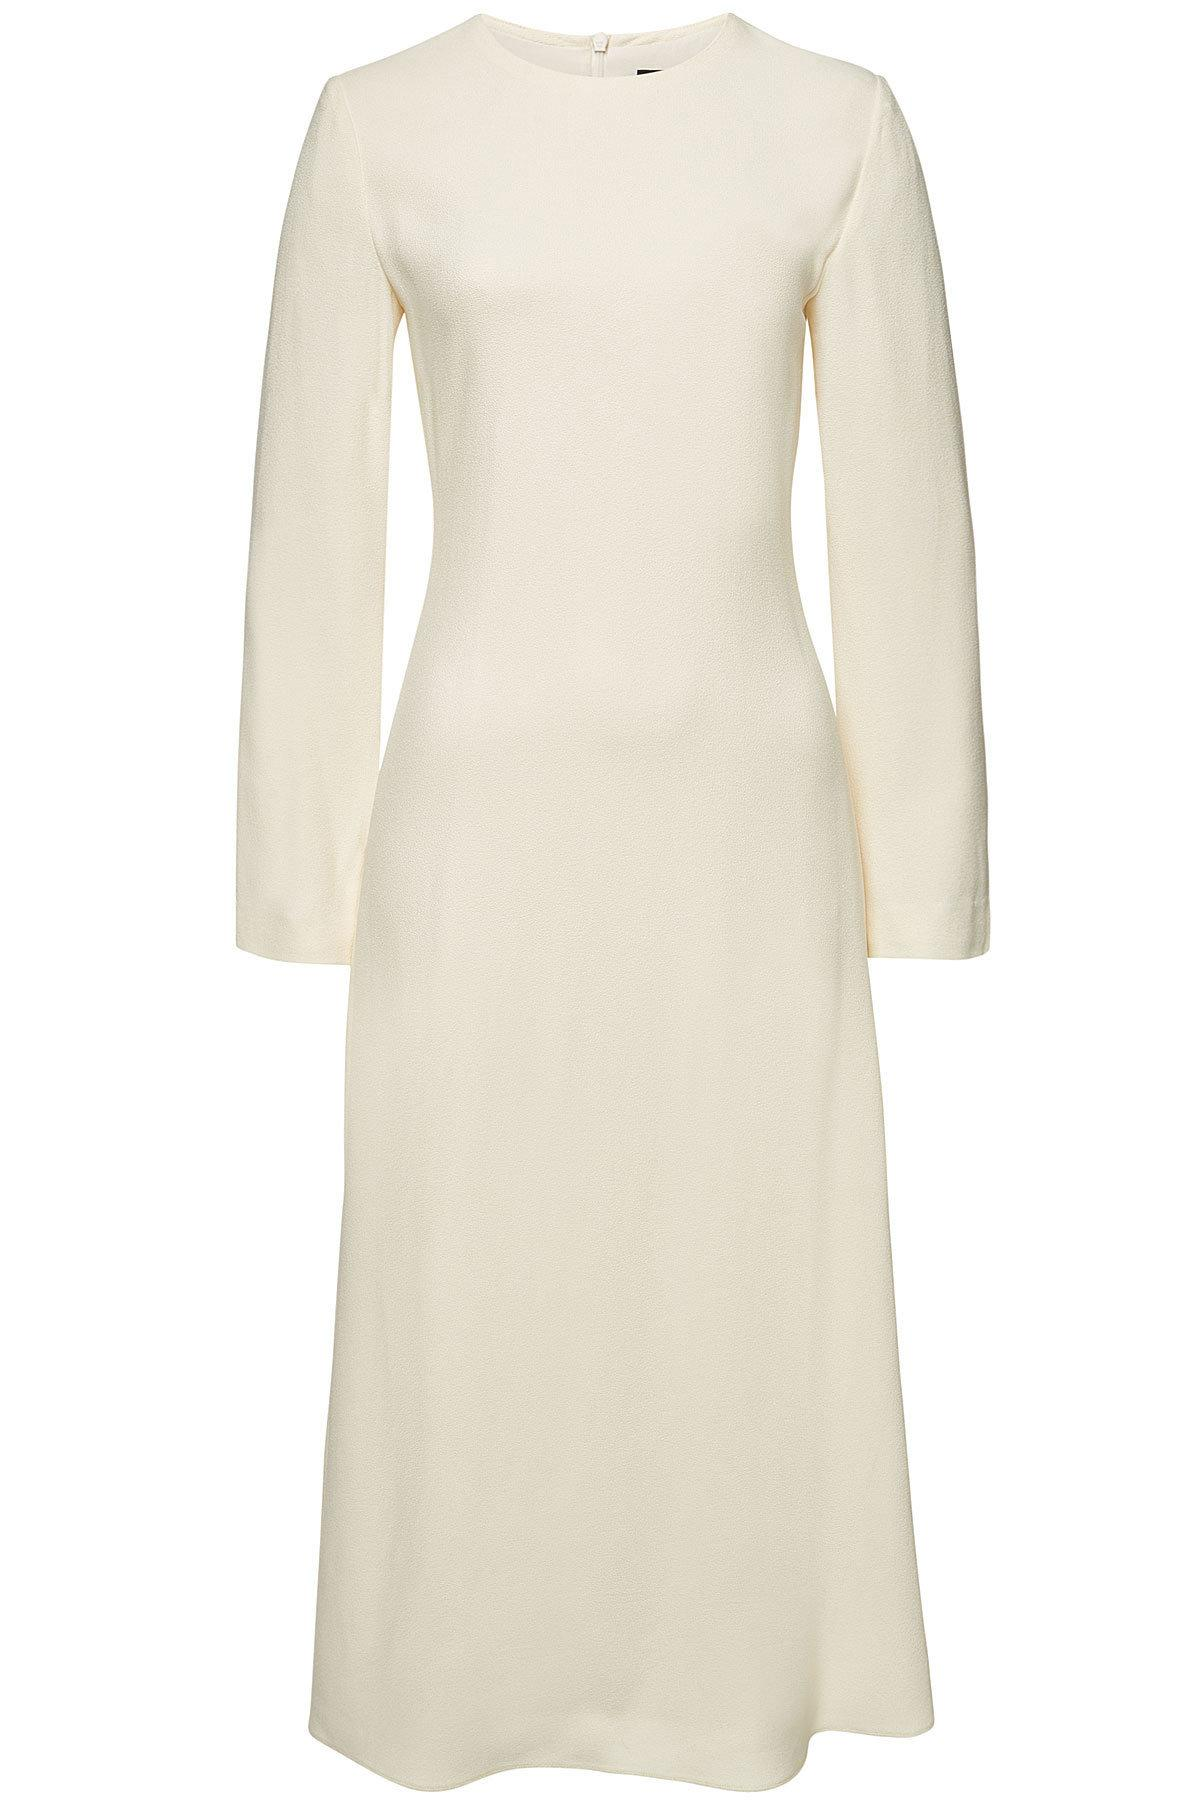 c338dc5dfd1 Lyst - Theory Crepe Midi Dress in Natural